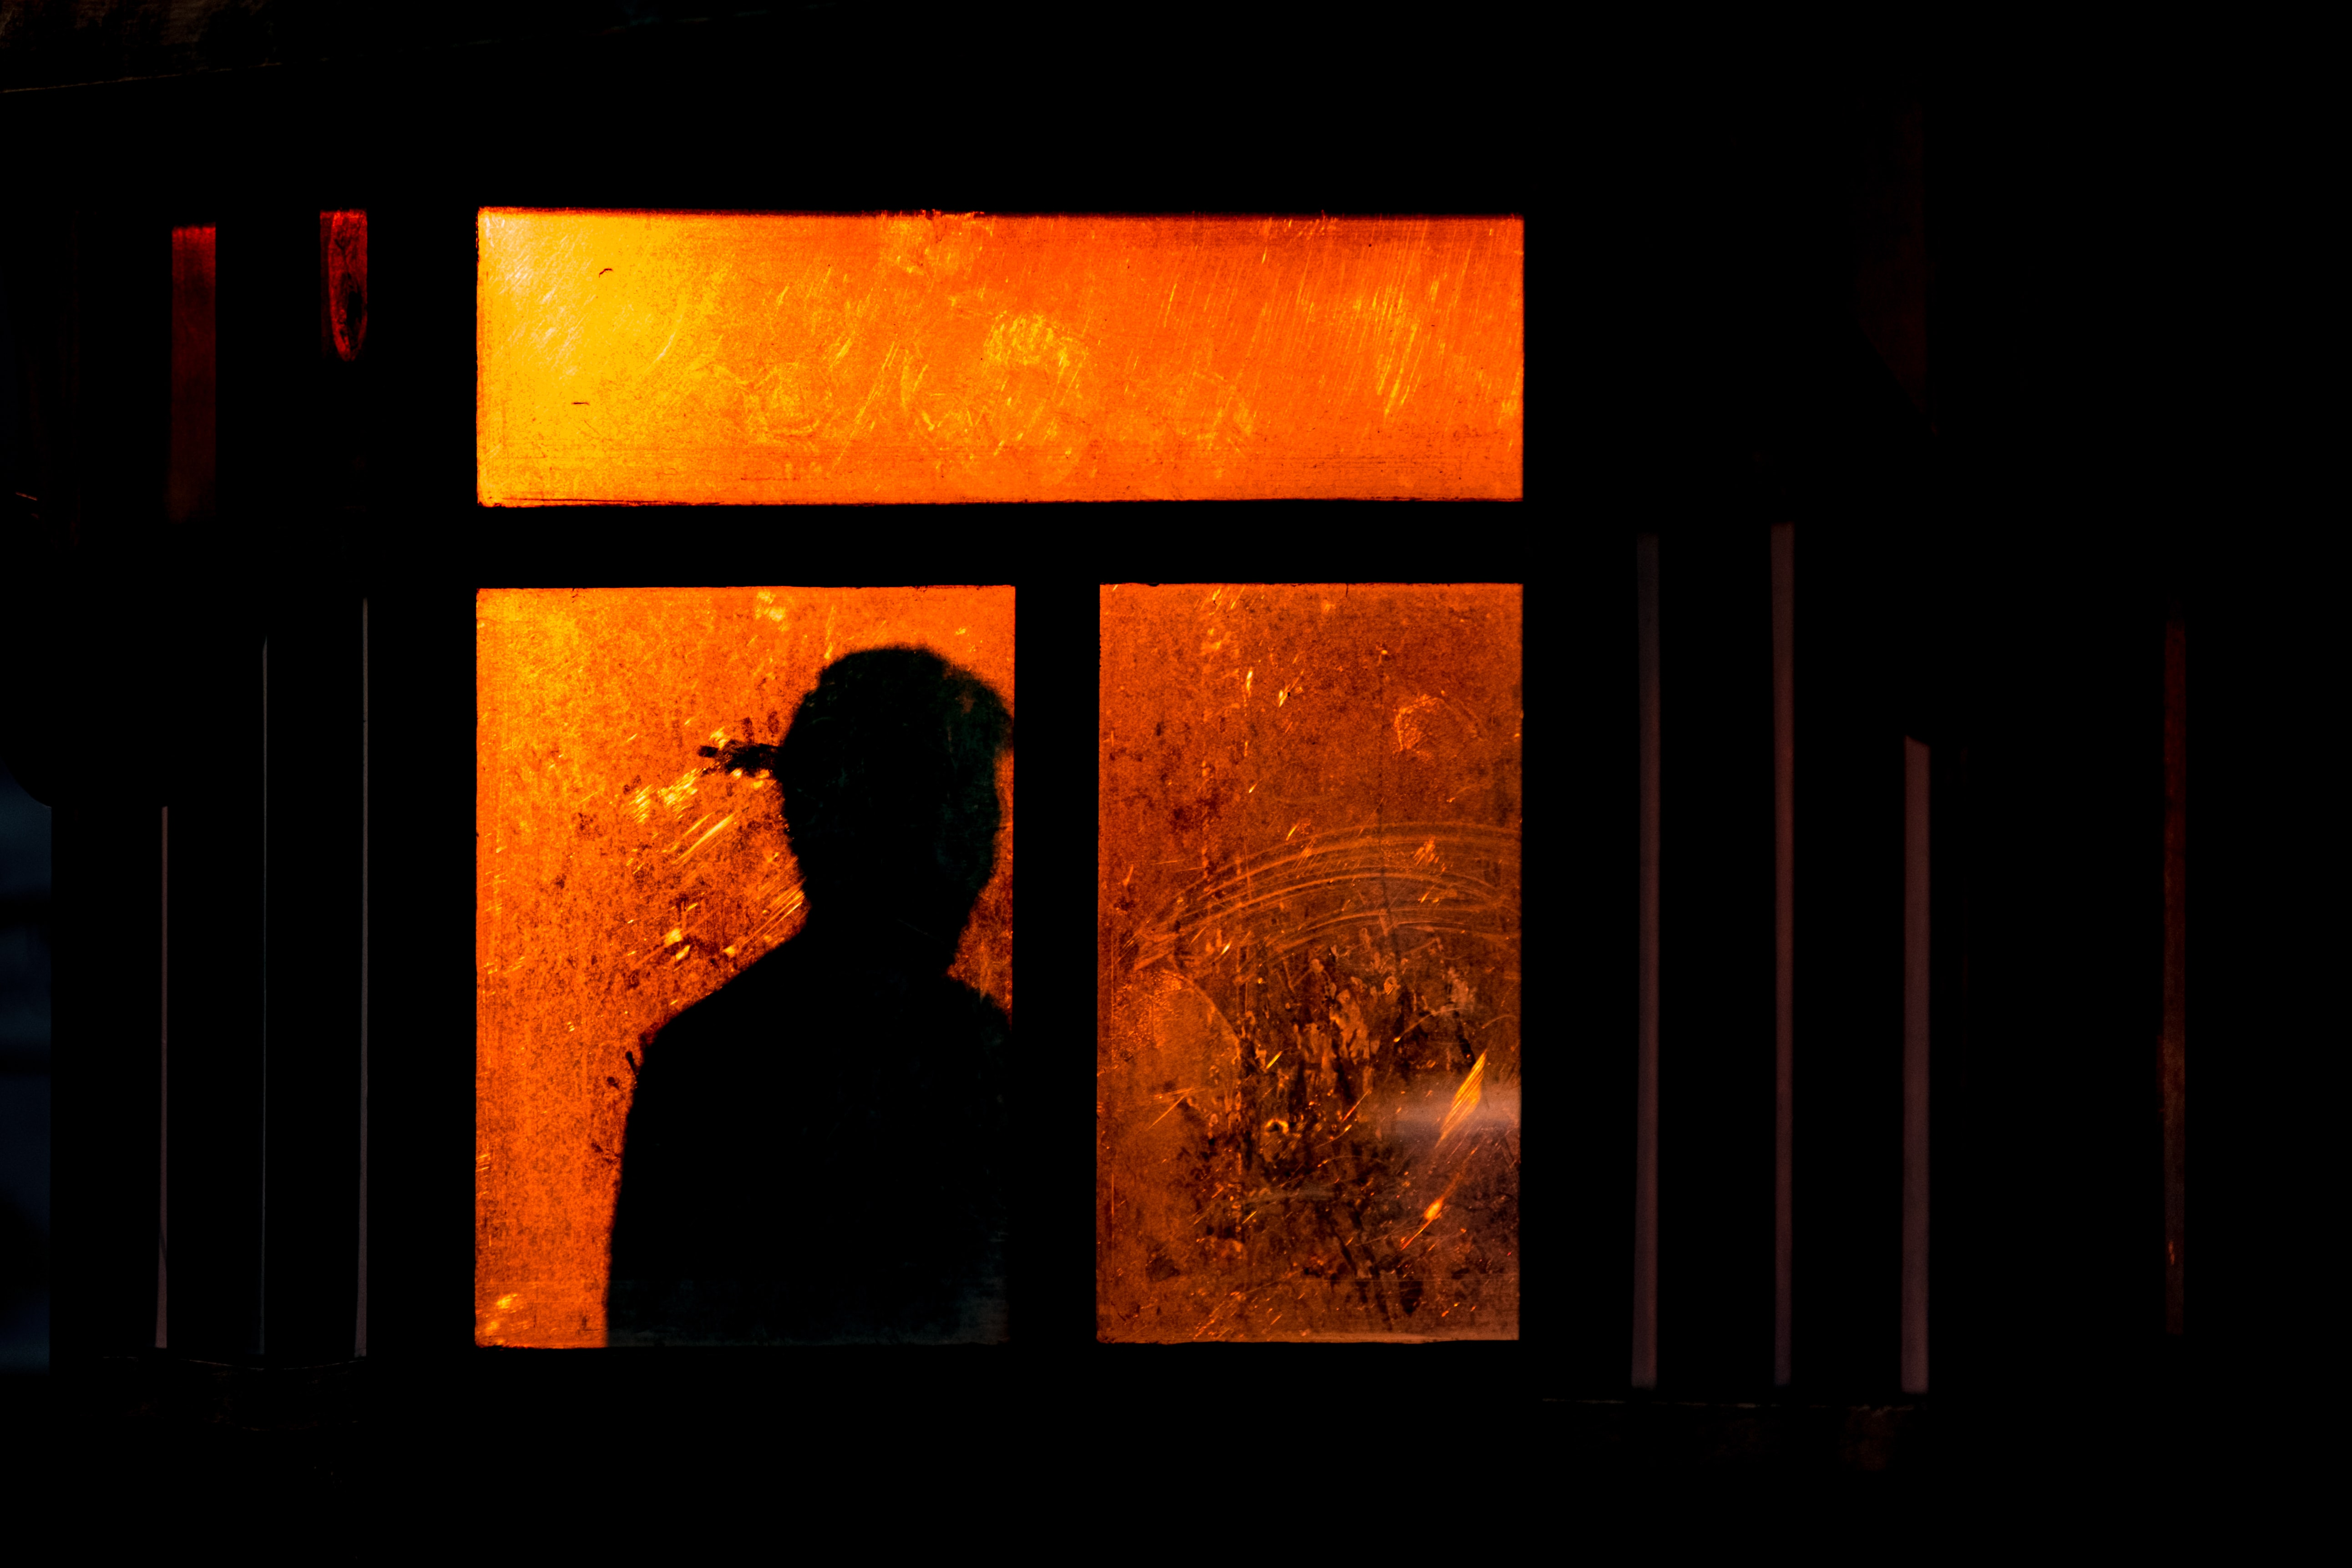 silhouette of a person at the window